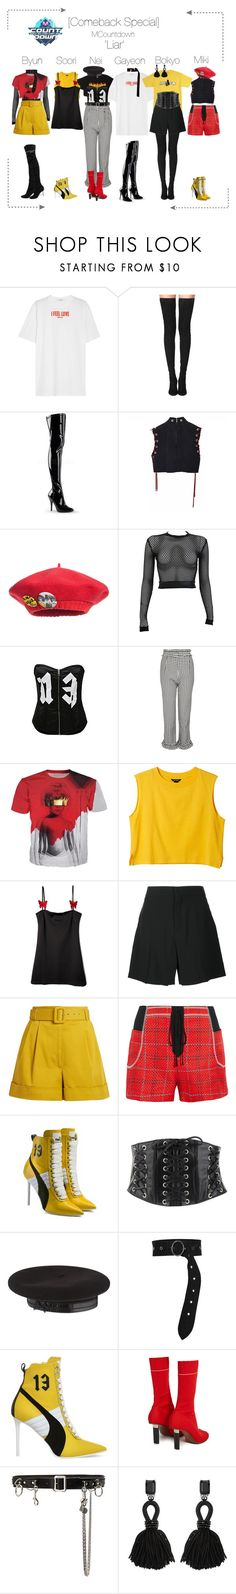 """""""Lunar (루나) [Comeback Special] 'Liar' MCountdown"""" by lunar-official ❤ liked on Polyvore featuring Givenchy, Tamara Mellon, Junior Gaultier, PAM, Topshop, Monki, Chloé, Isa Arfen, 3.1 Phillip Lim and Puma"""